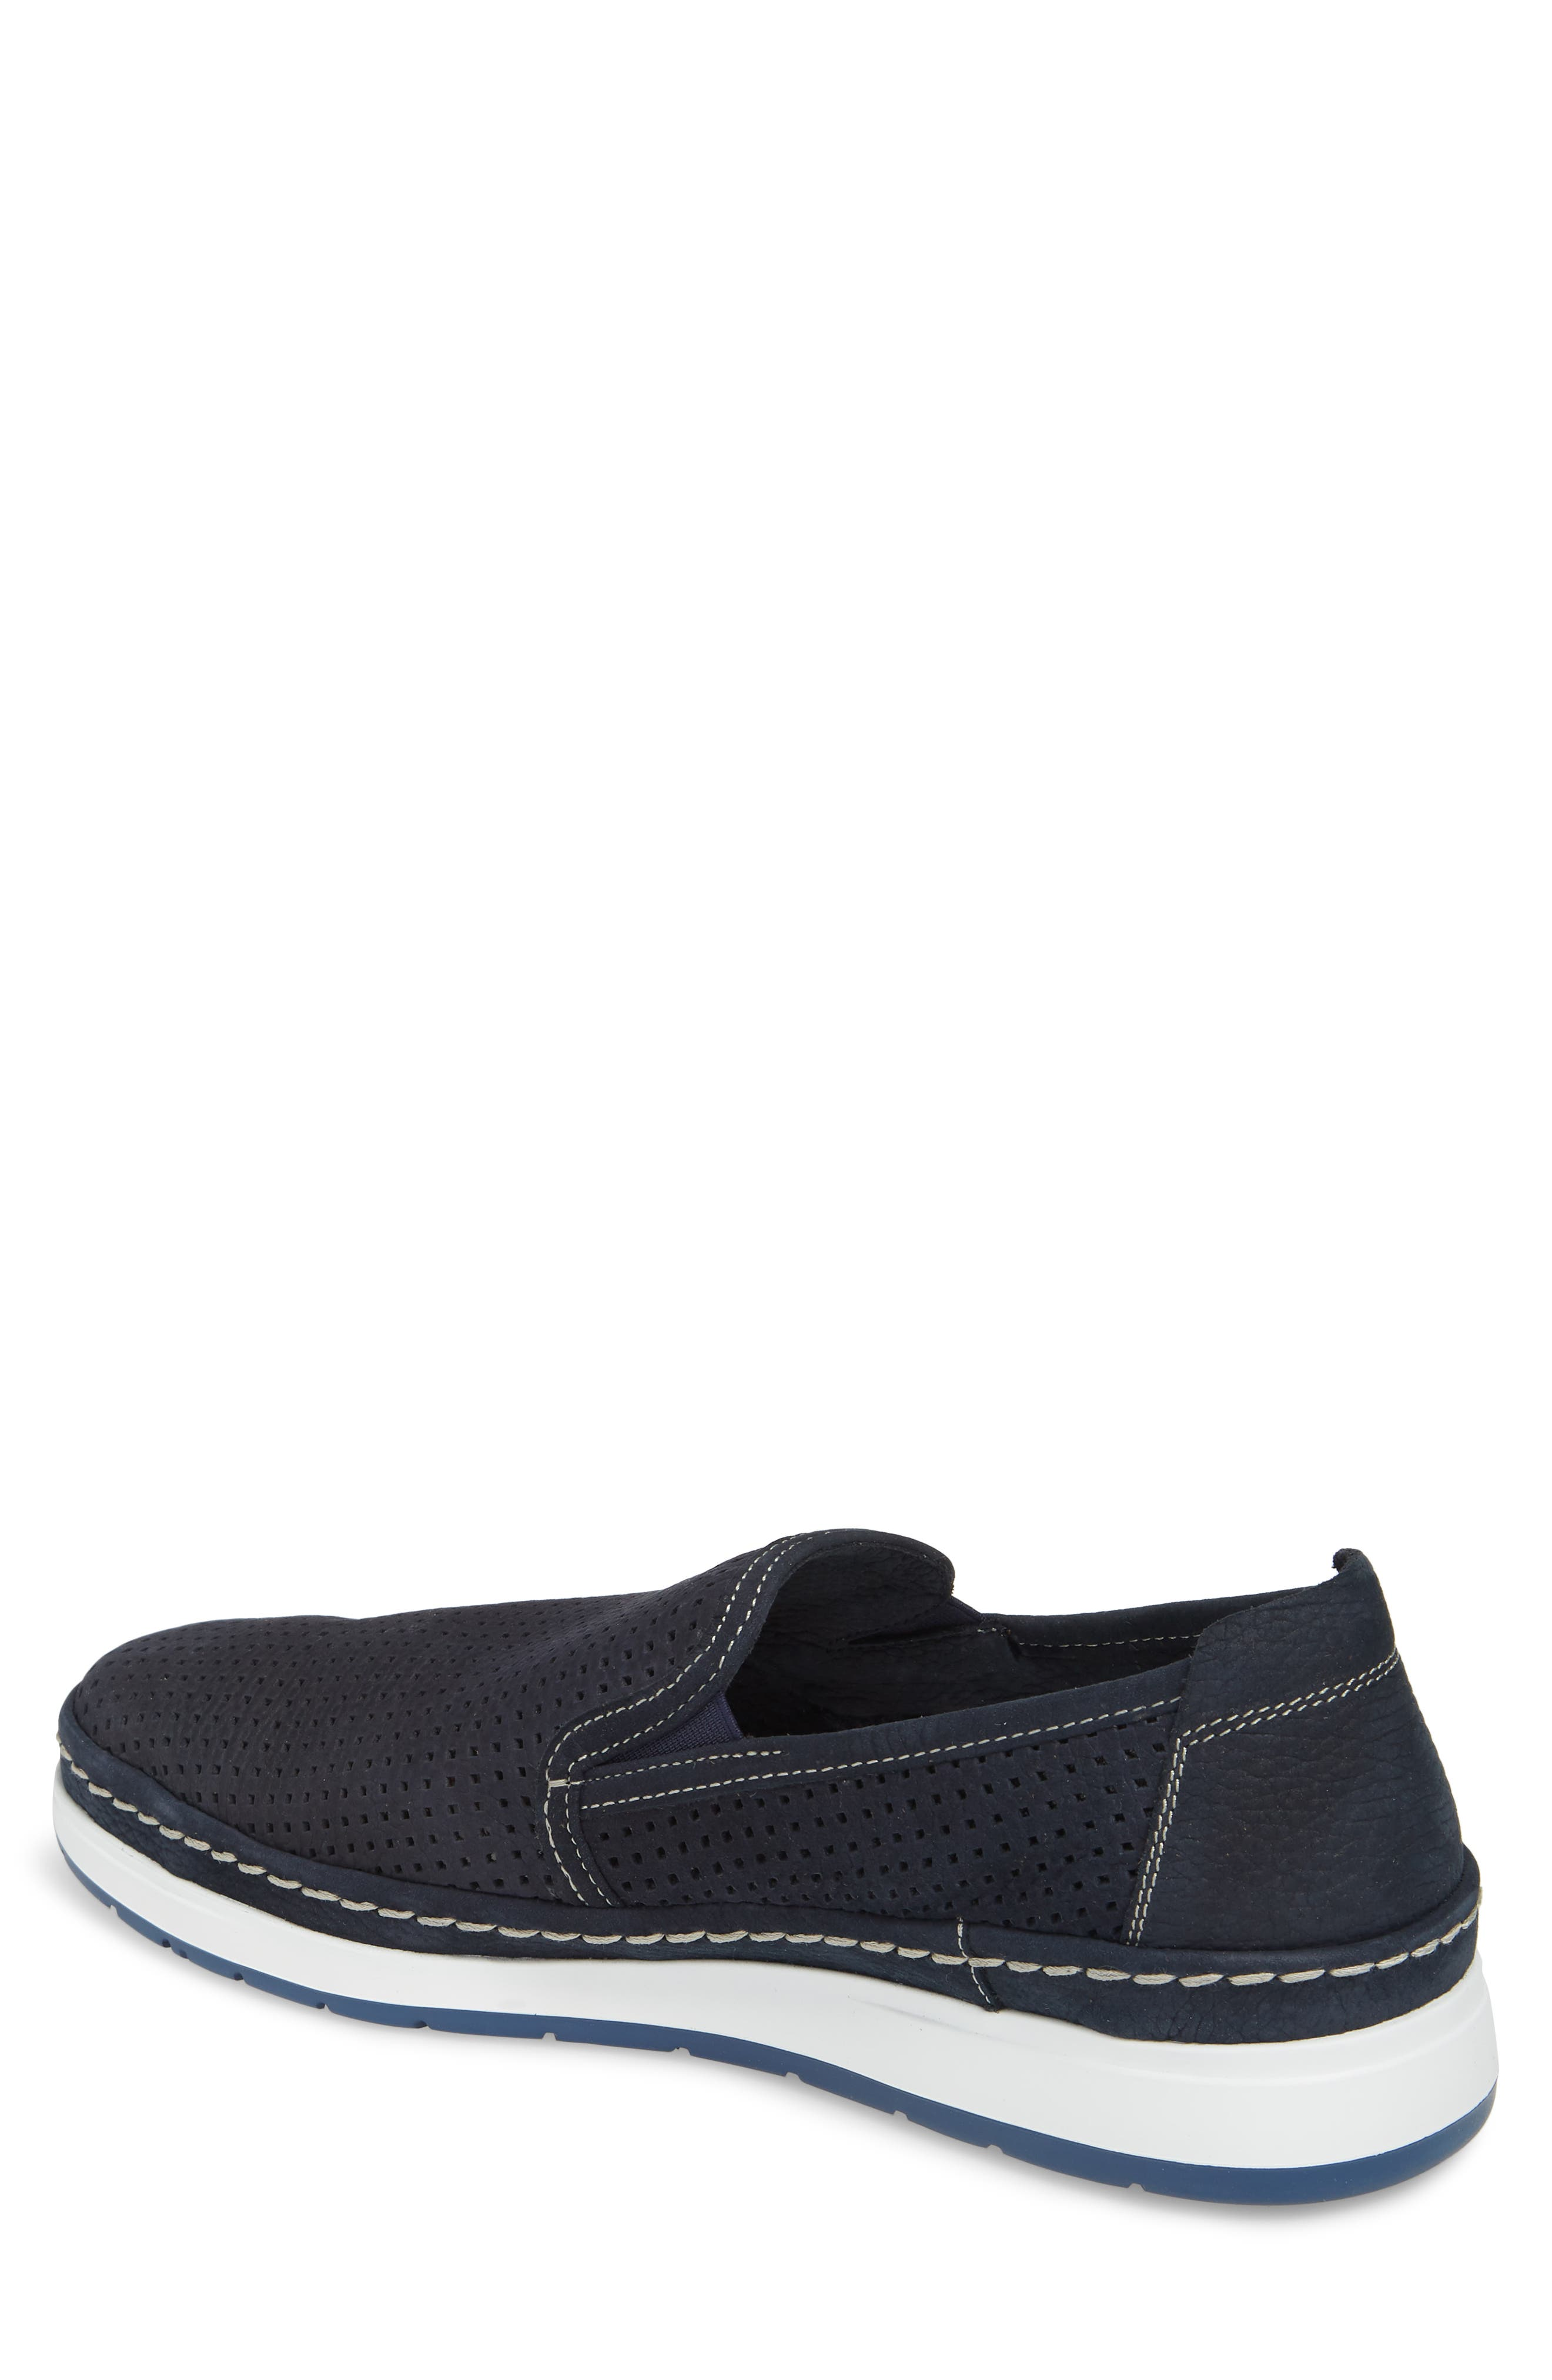 Hadrian Perforated Slip-On,                             Alternate thumbnail 2, color,                             Navy